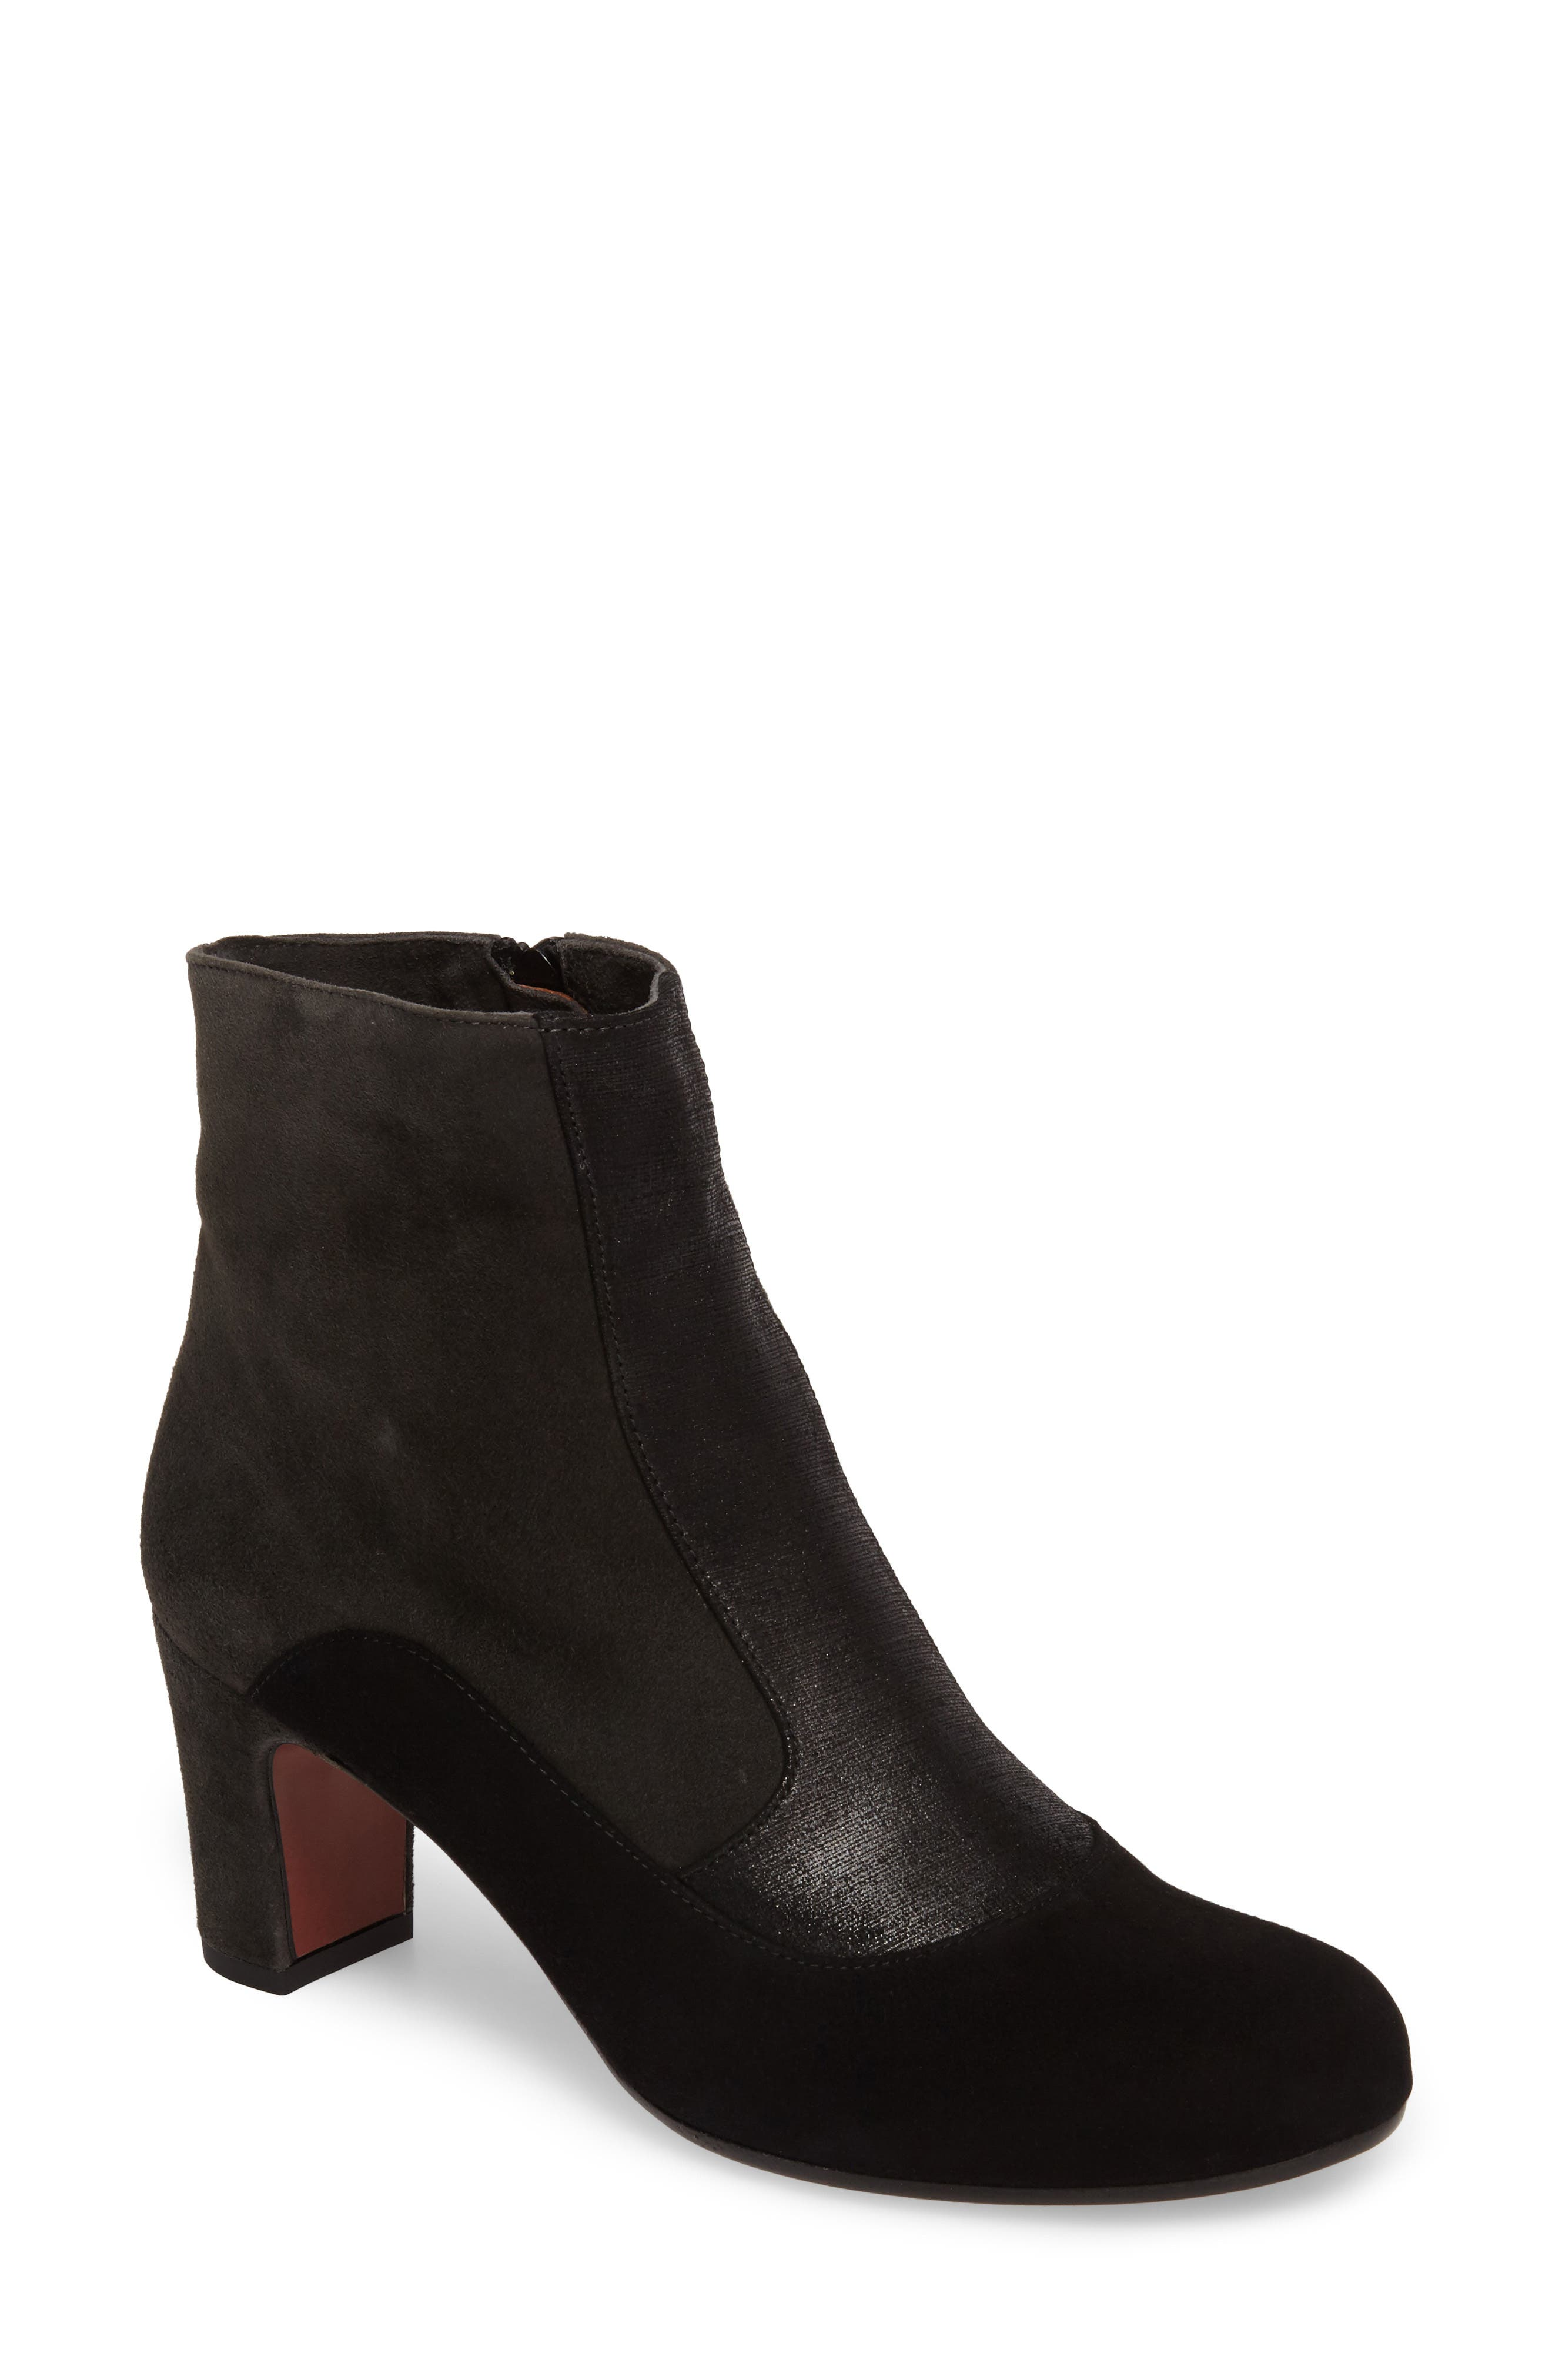 Alternate Image 1 Selected - Chie Mihara Jelus Round Toe Bootie (Women)